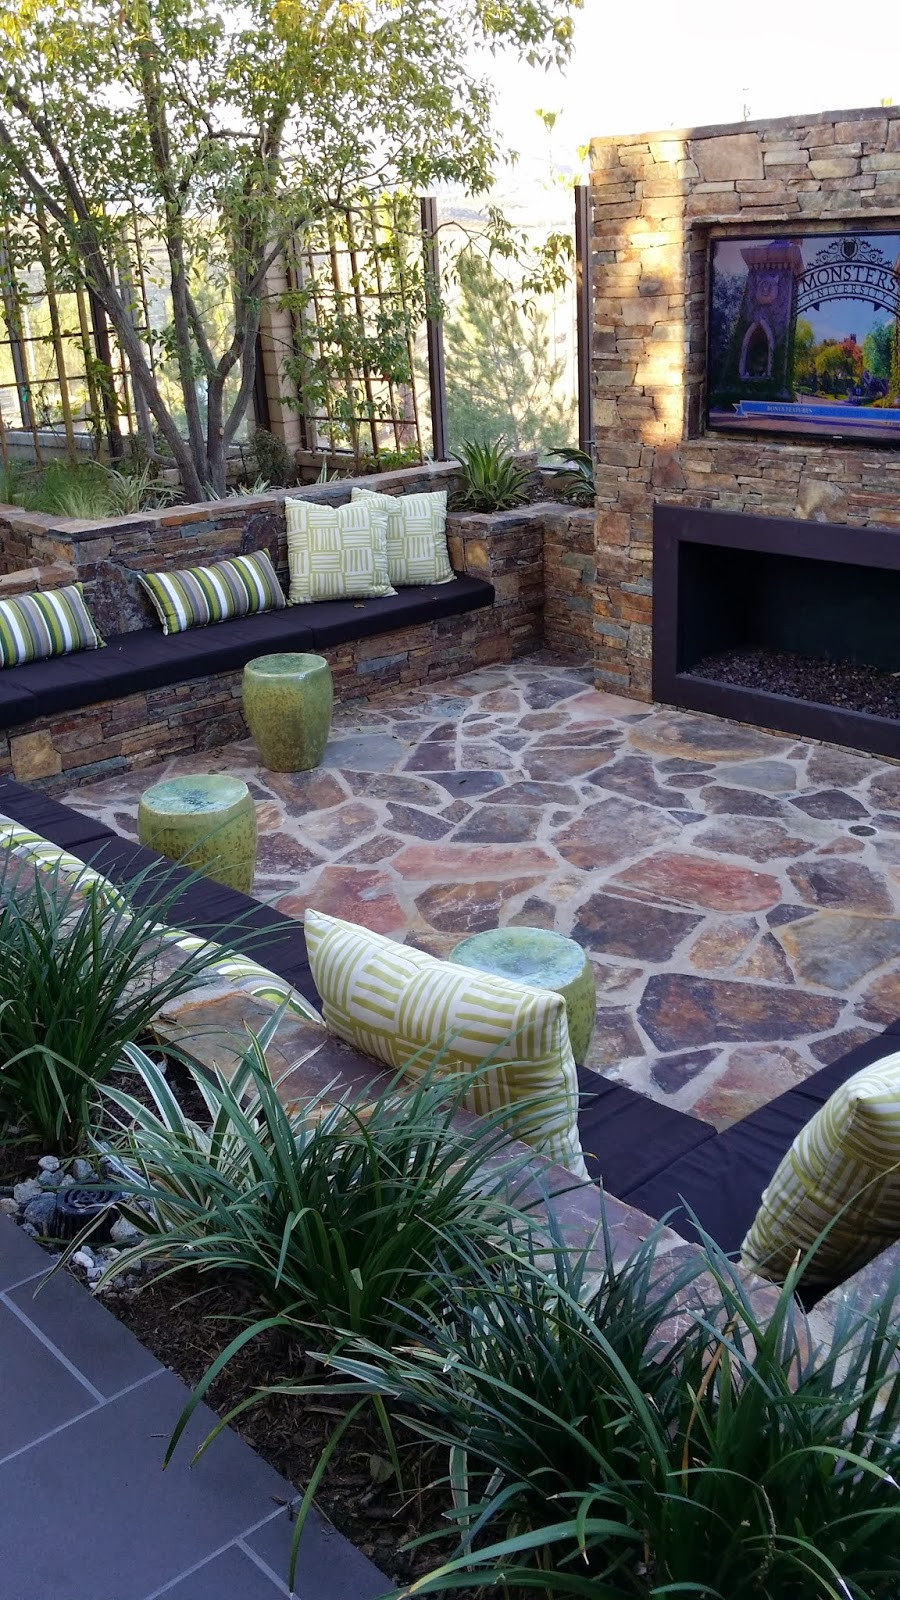 Tg interiors model homes in orange county and shopping for Small outdoor patio areas